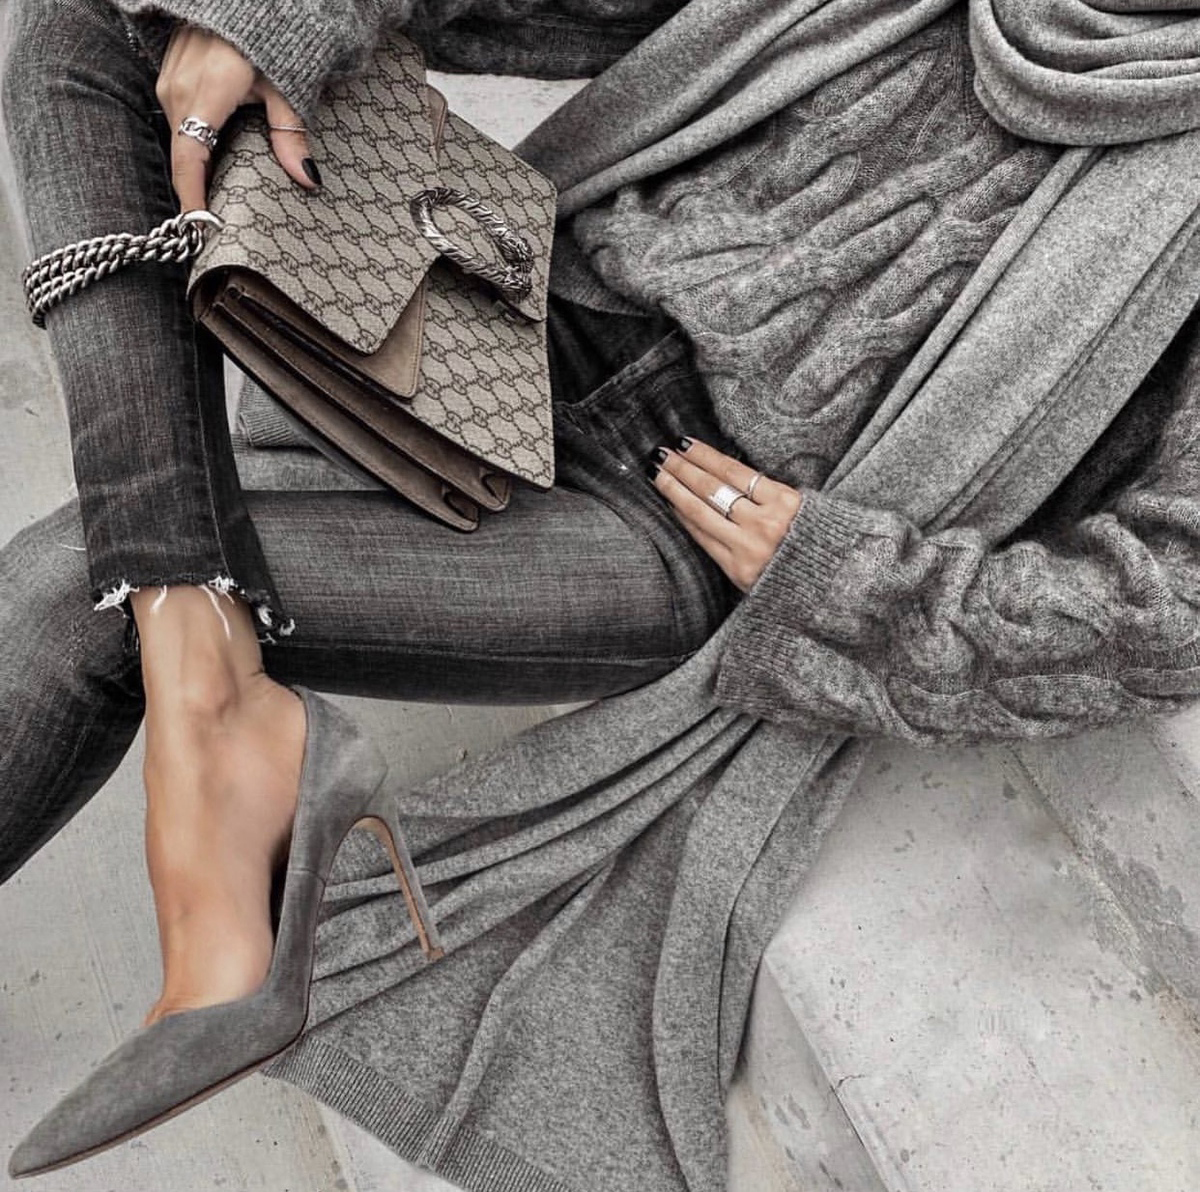 sweater styles, chic sweater styles, sweater styles of fall 2019, gray monochromatic outfit, cable knit sweater   lolario style